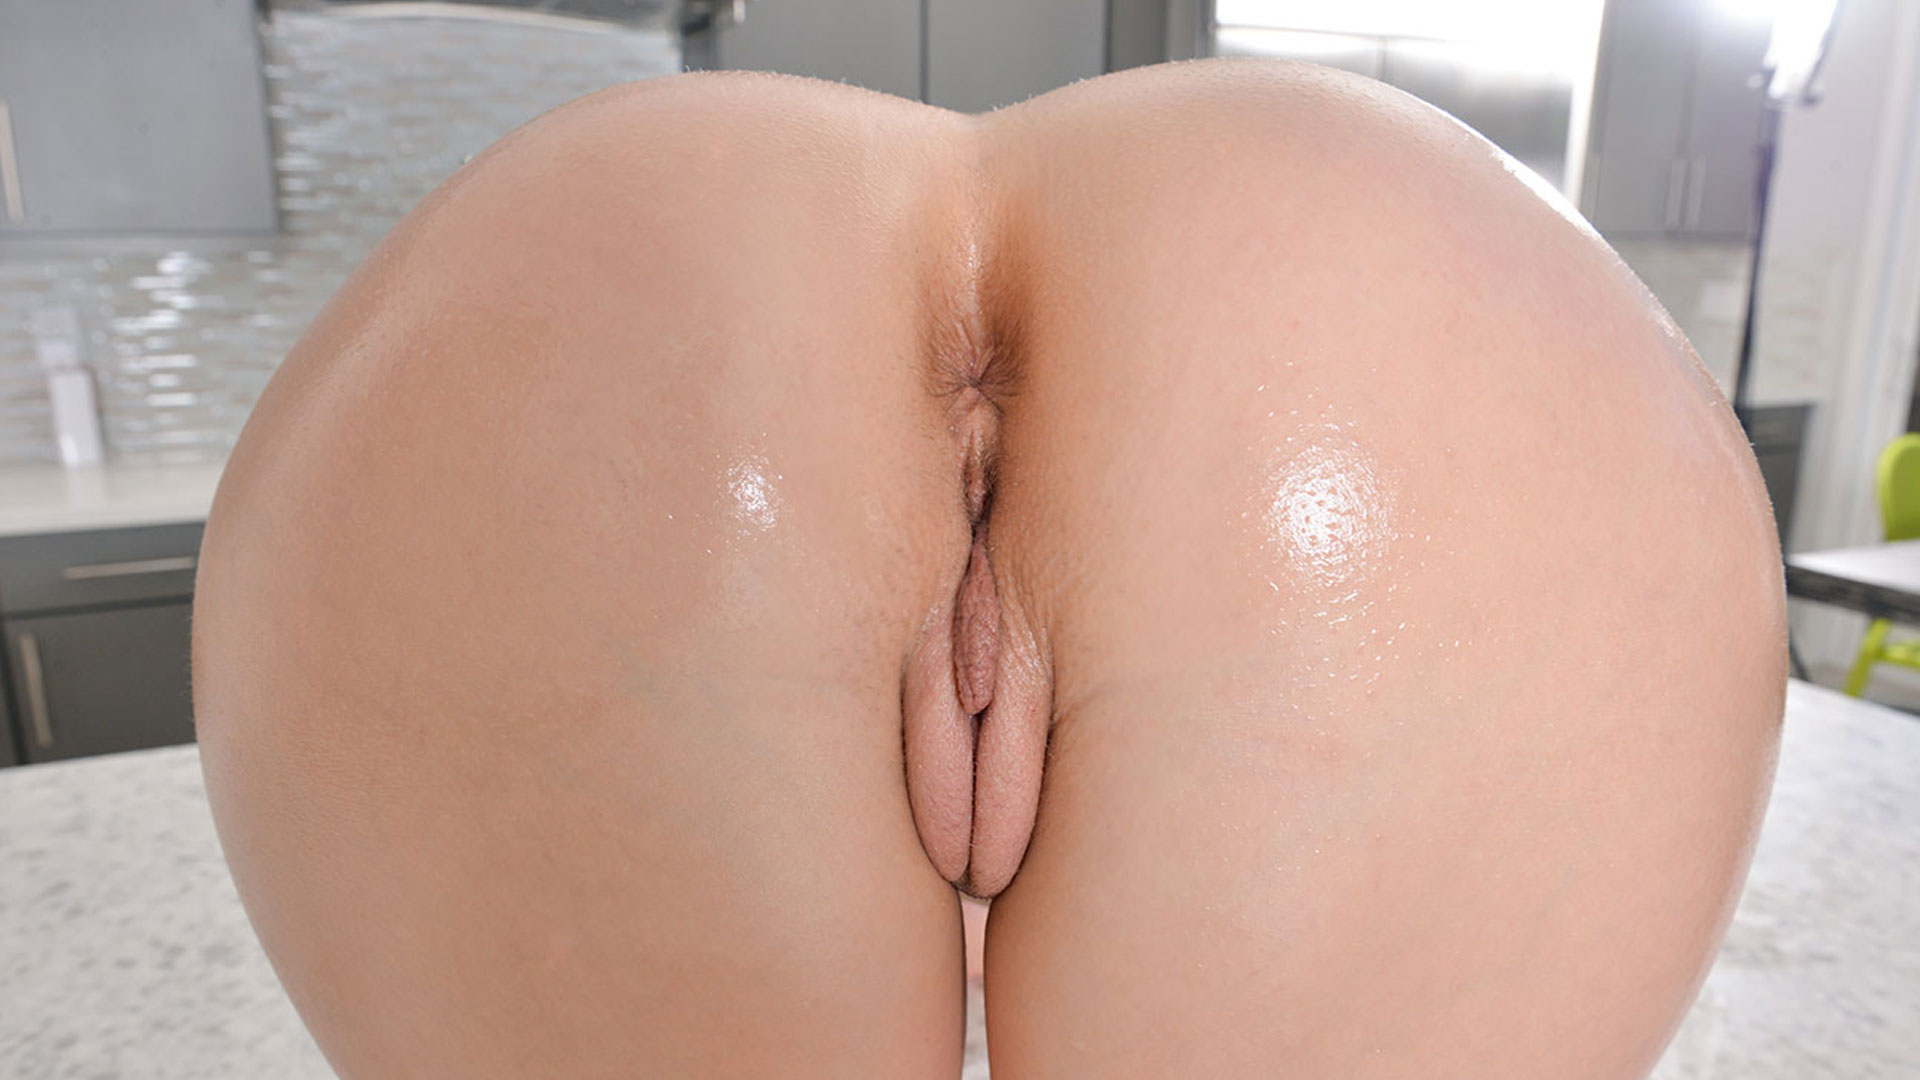 Especial. Big butt hd sex